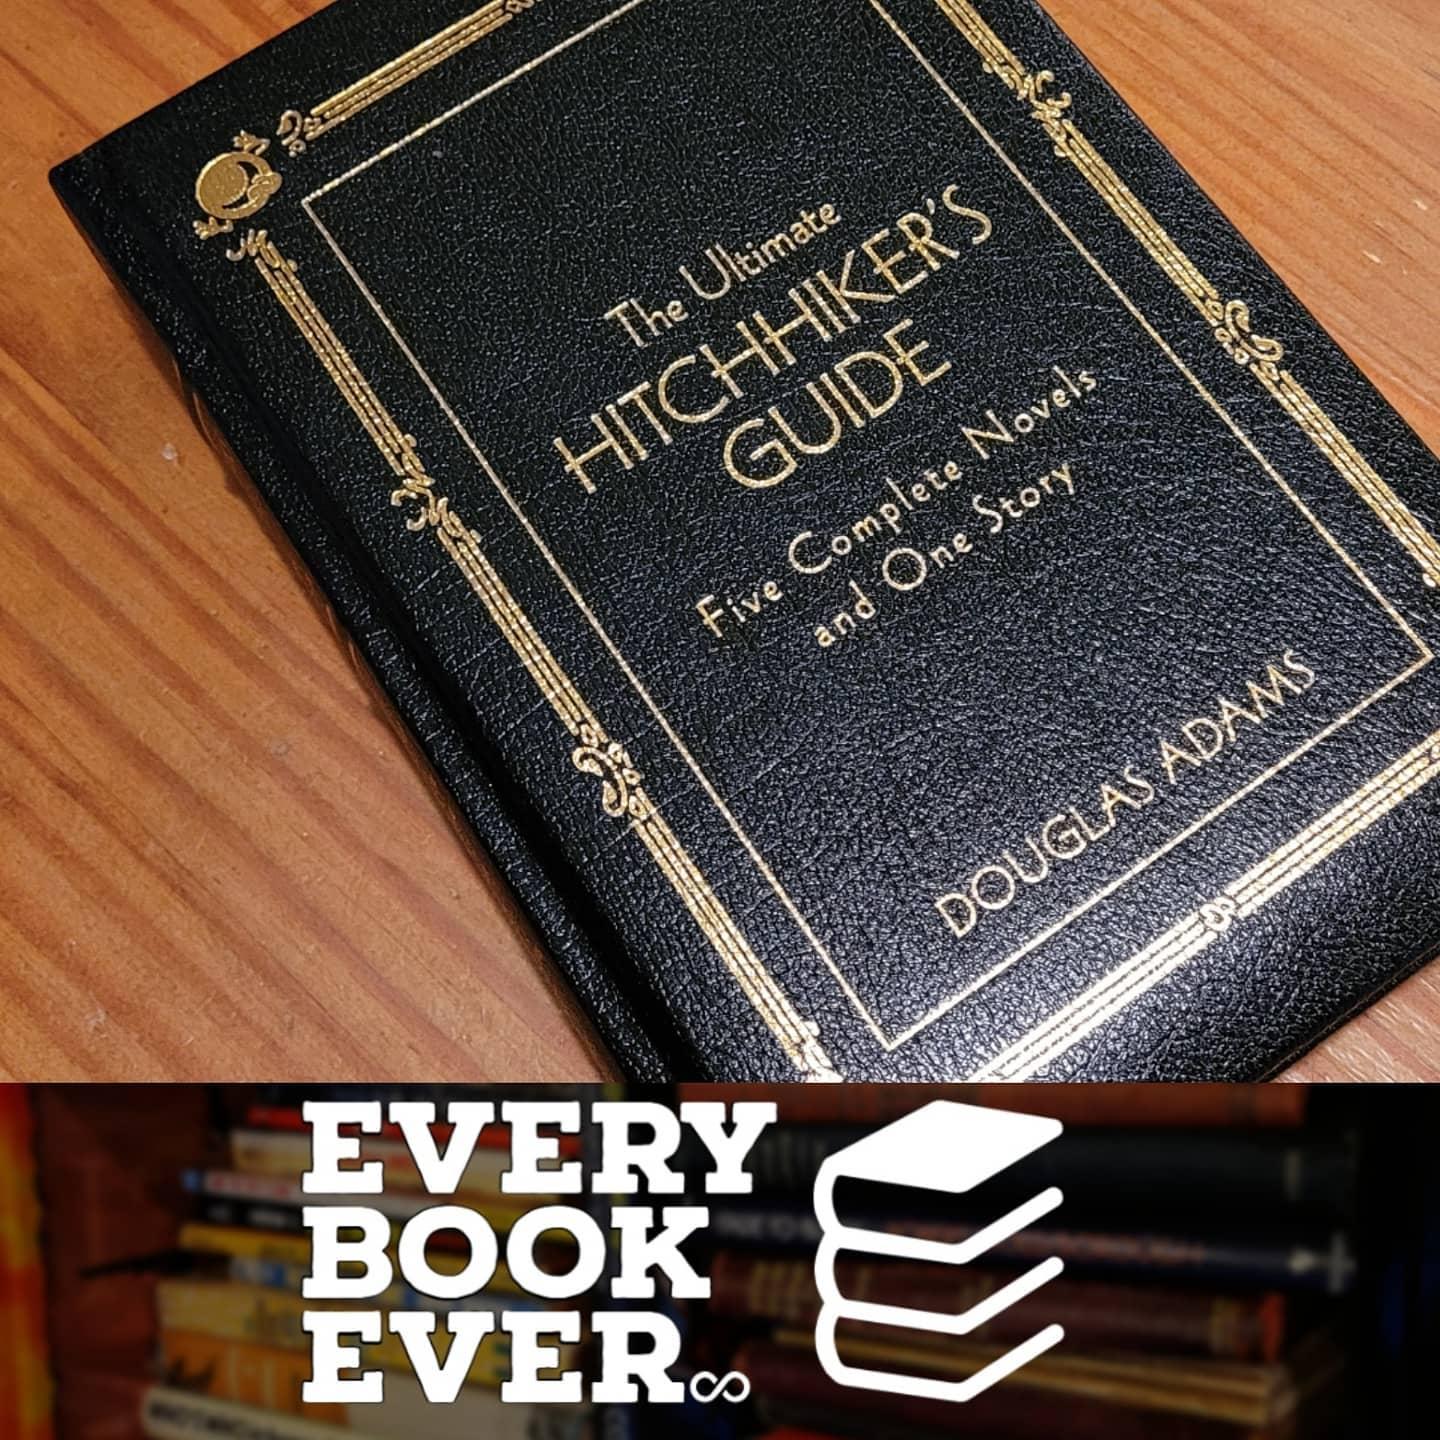 The Ultimate Hitchhiker's Guide to the Galaxy #EveryBookEver.